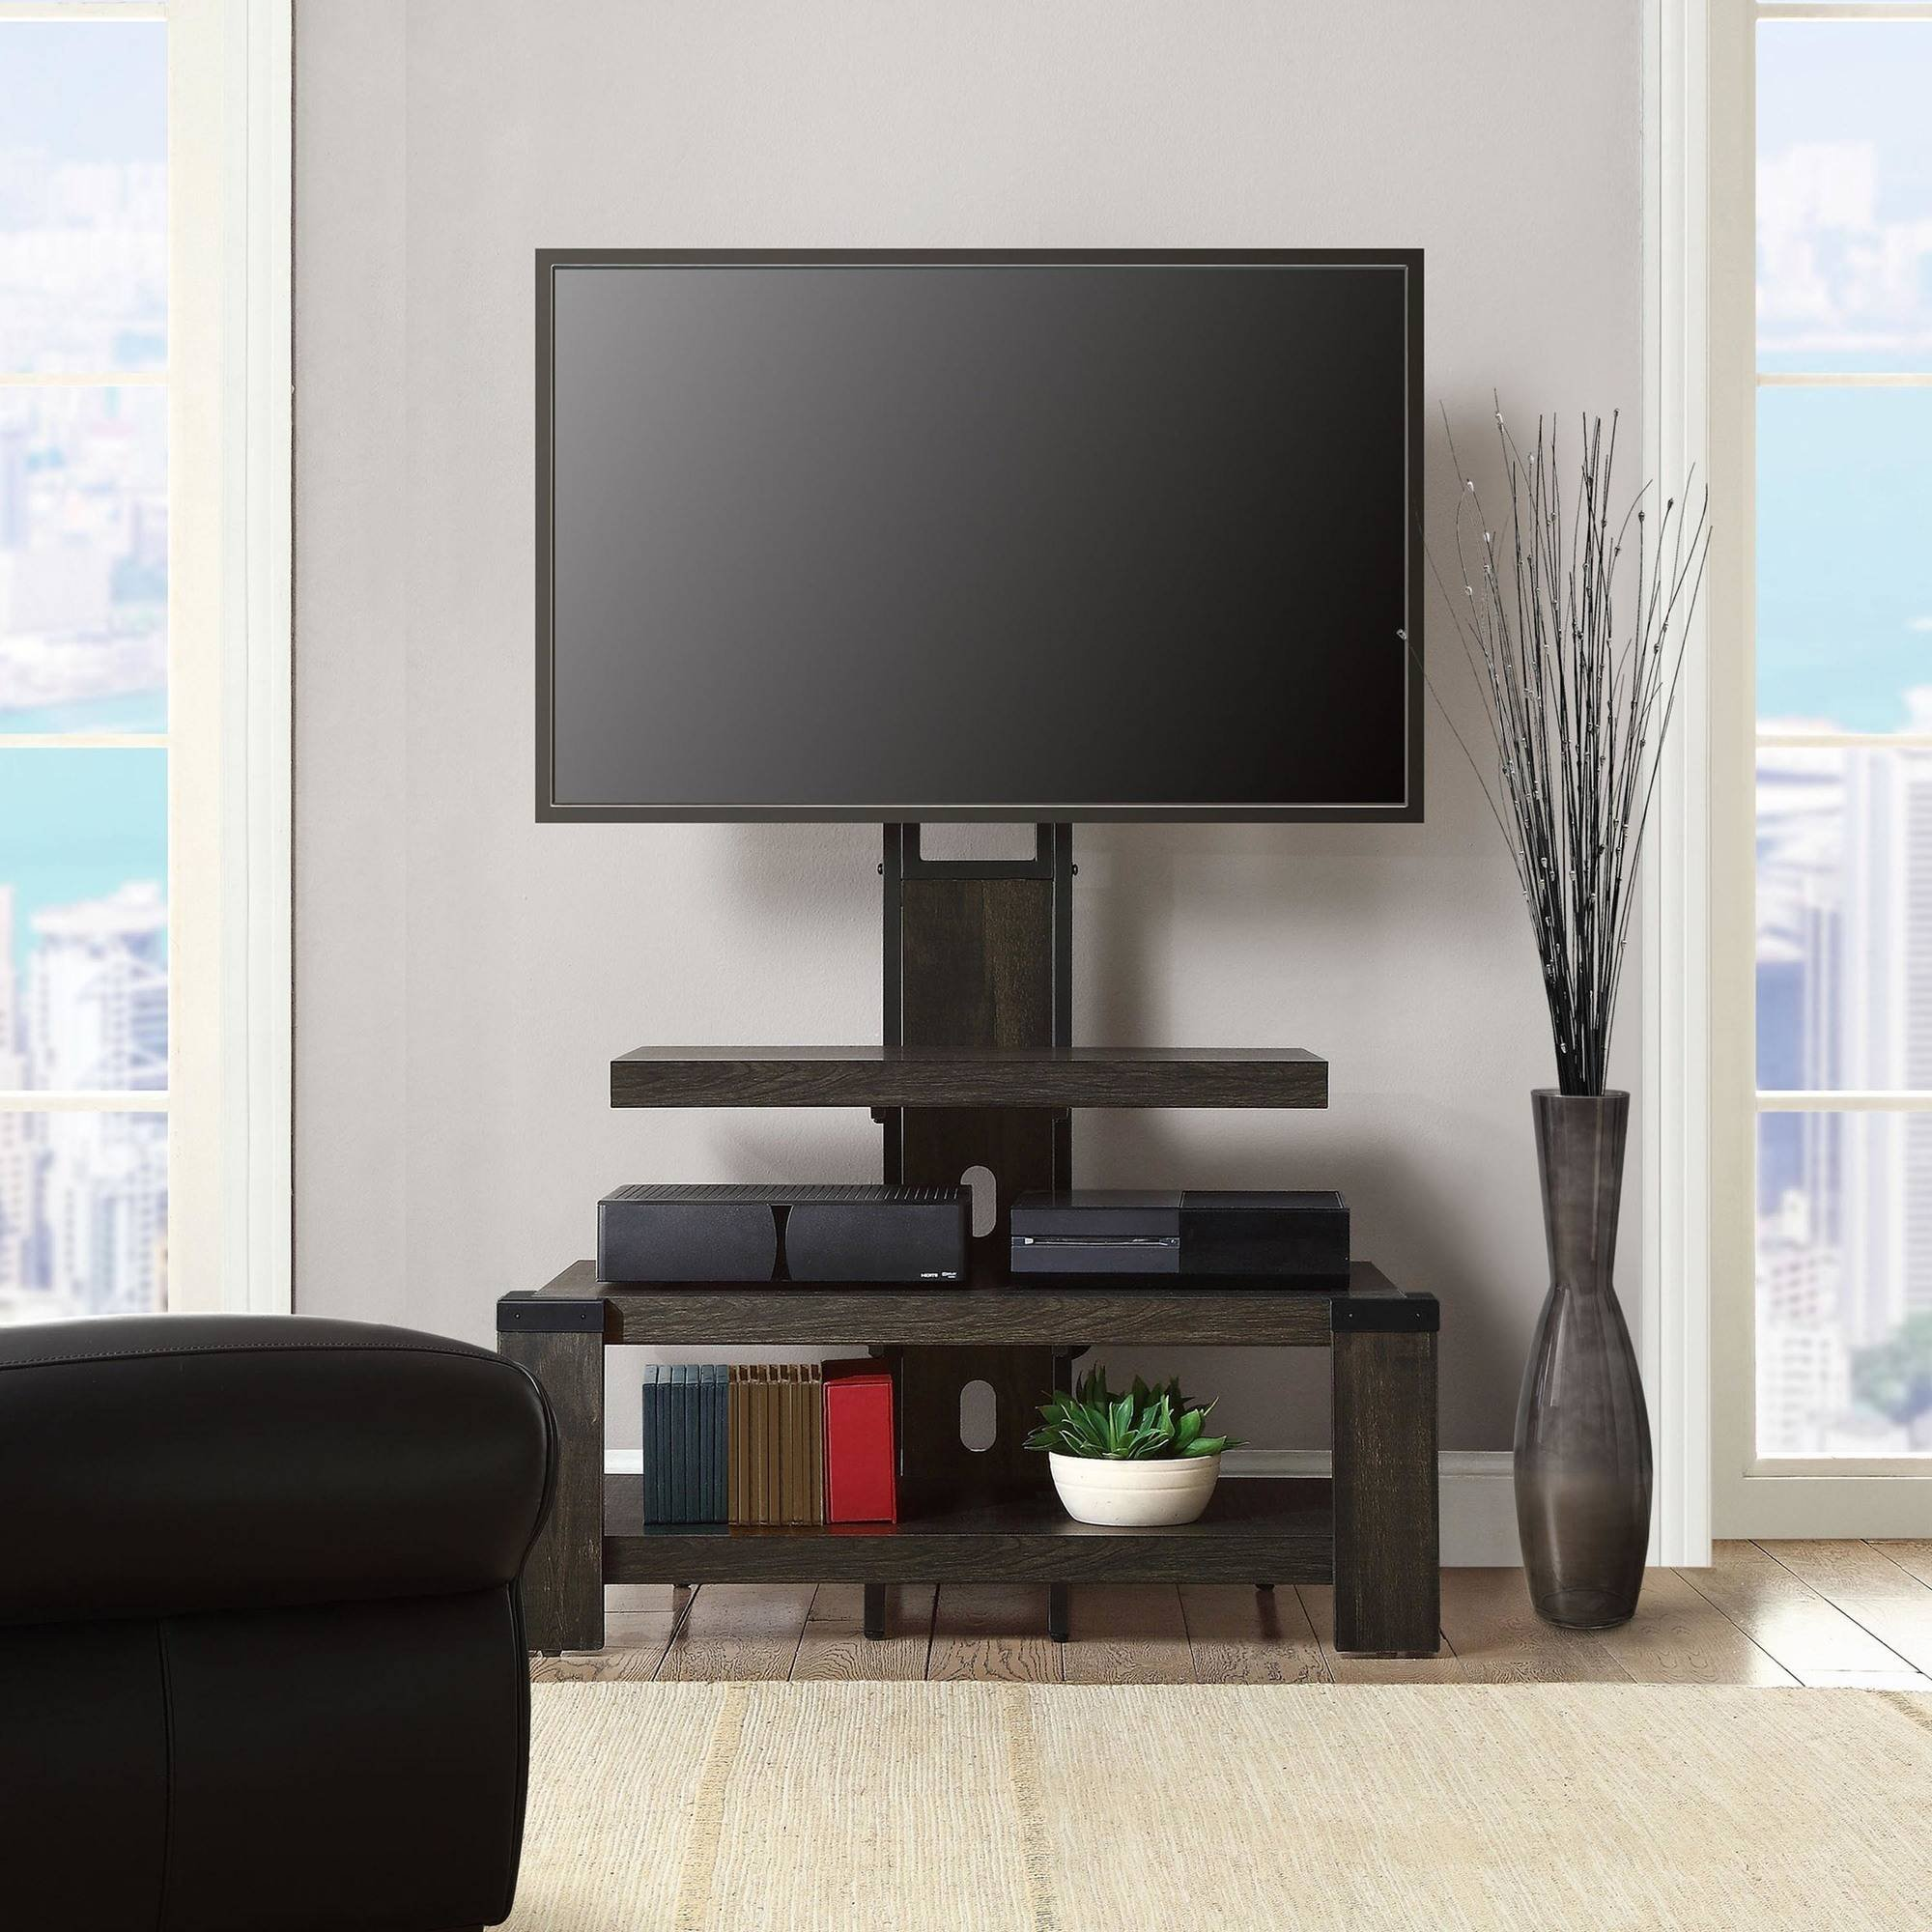 Cheap Whalen Tv Stand 3 In 1 Find Whalen Tv Stand 3 In 1 Deals On